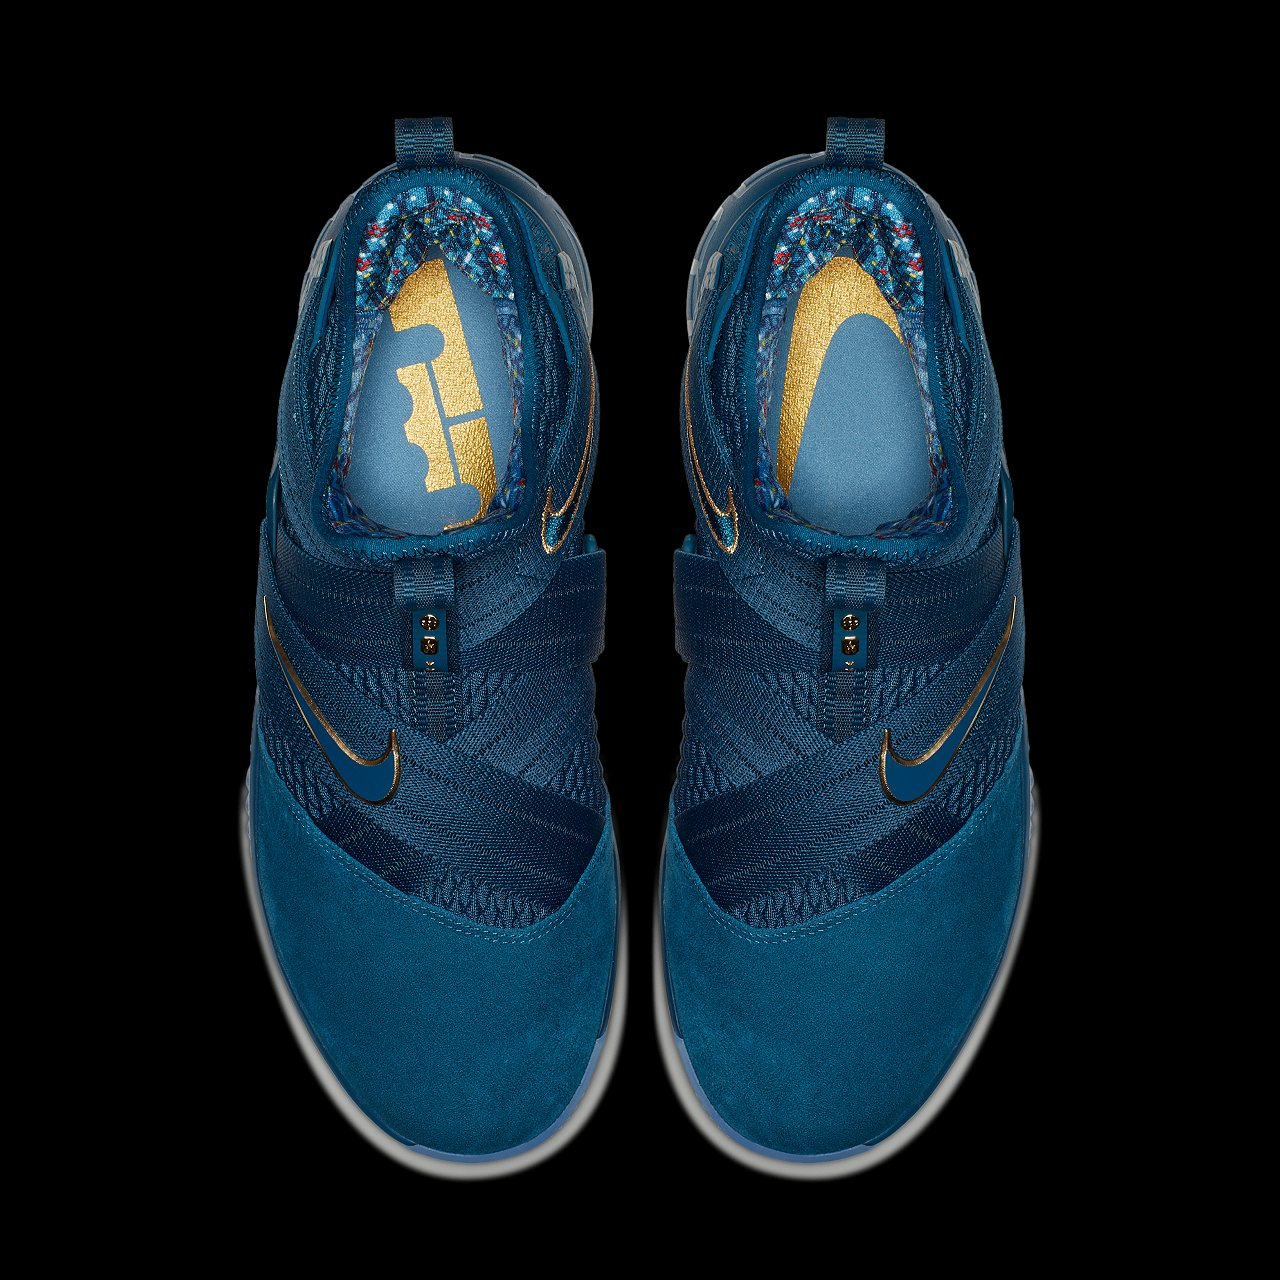 324094c3c71 The Nike Soldier 12